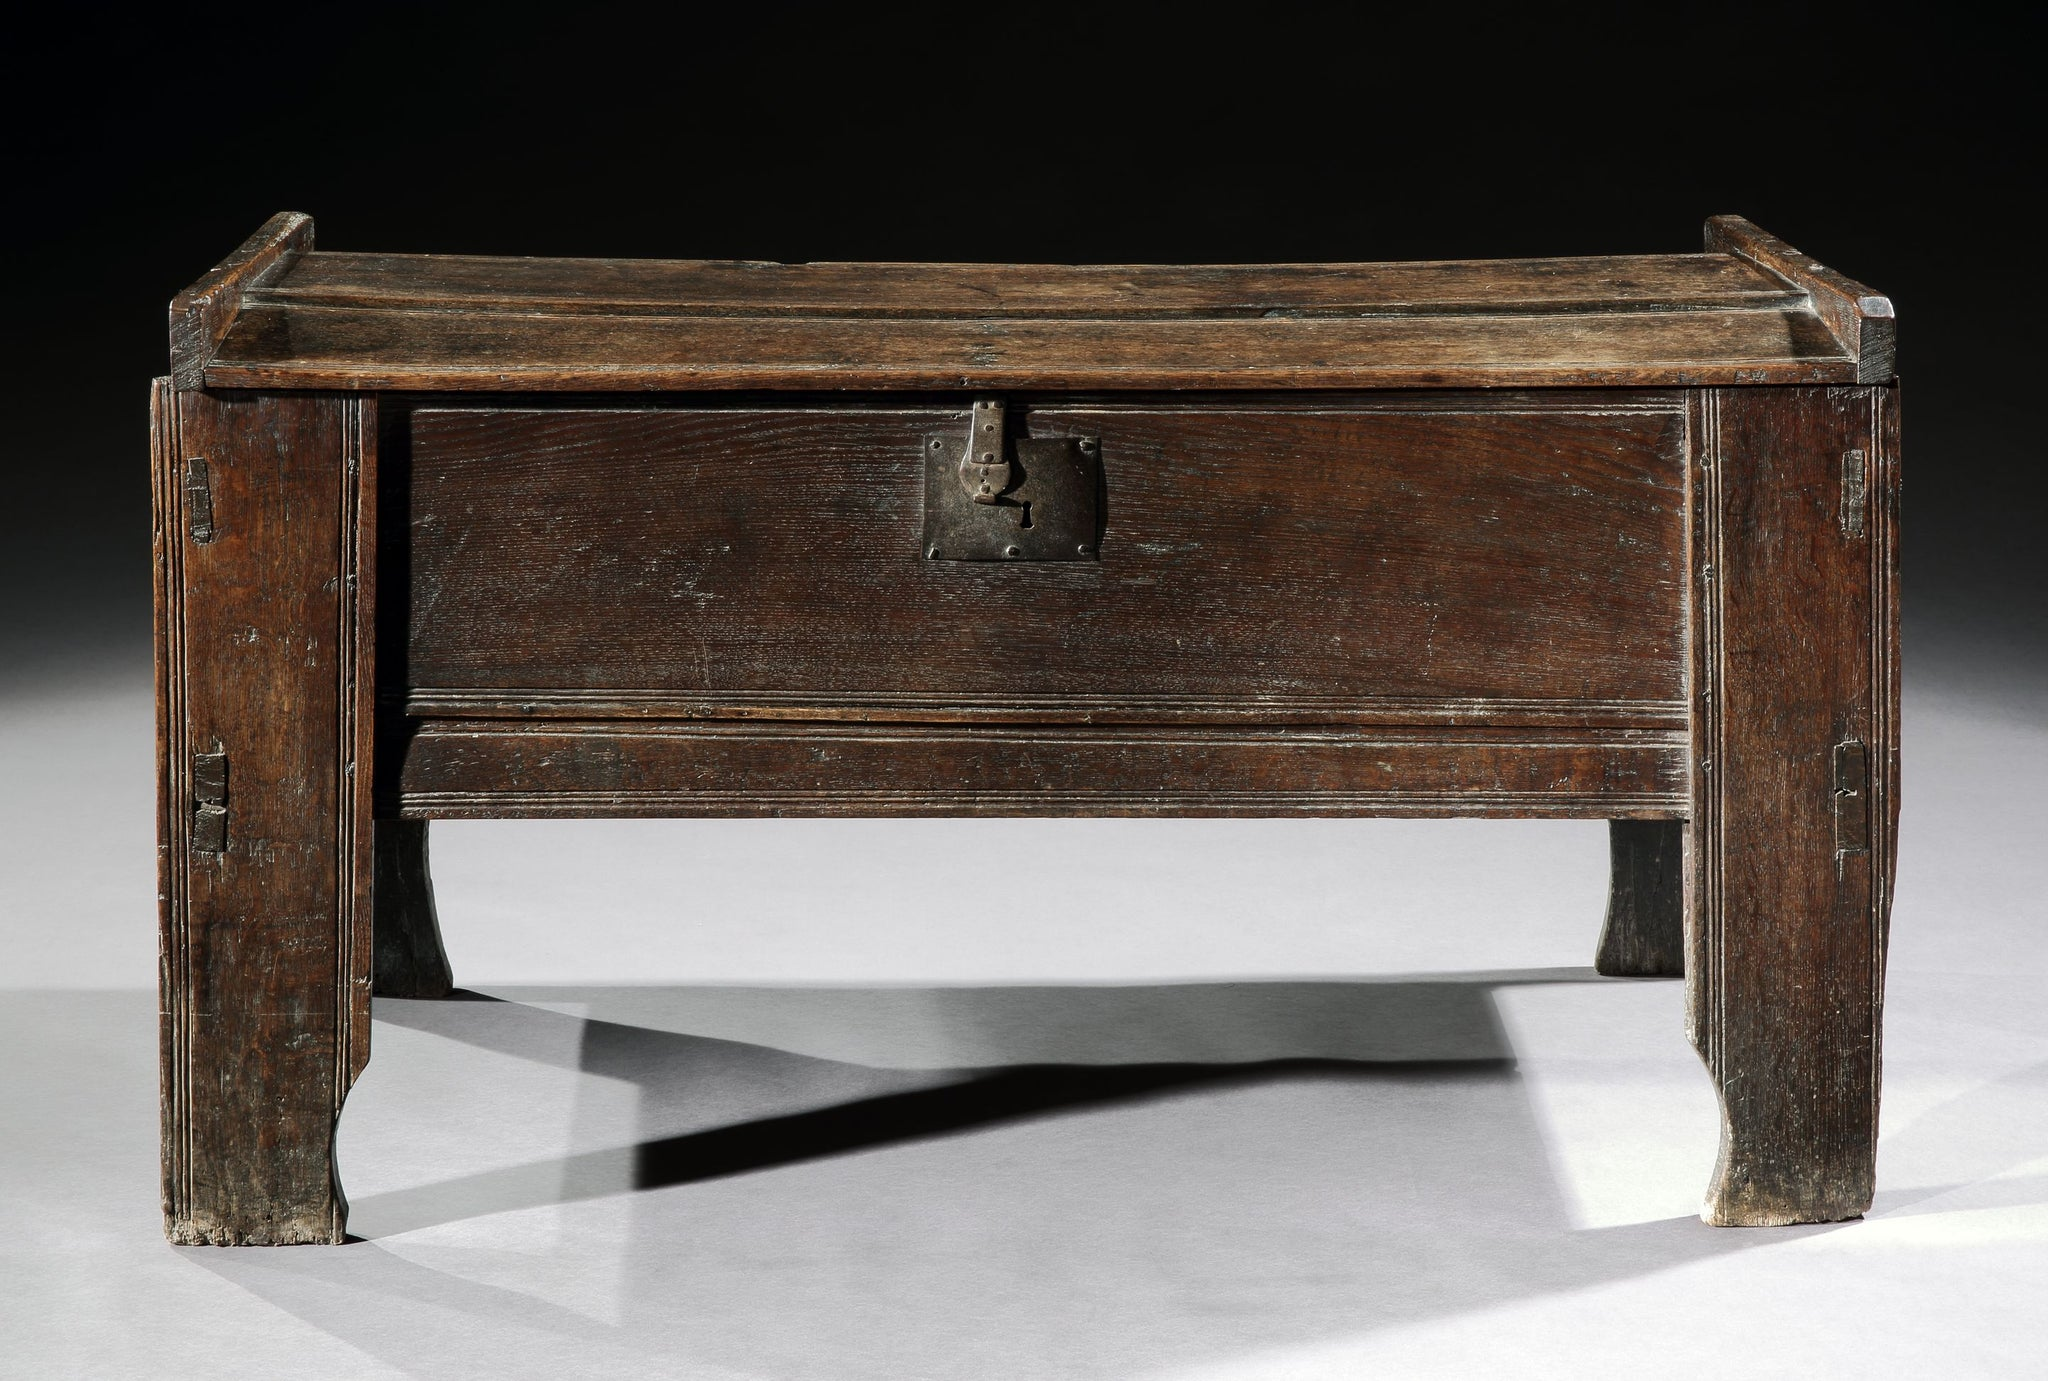 Rare Tall Sixteenth Century Boarded Chest